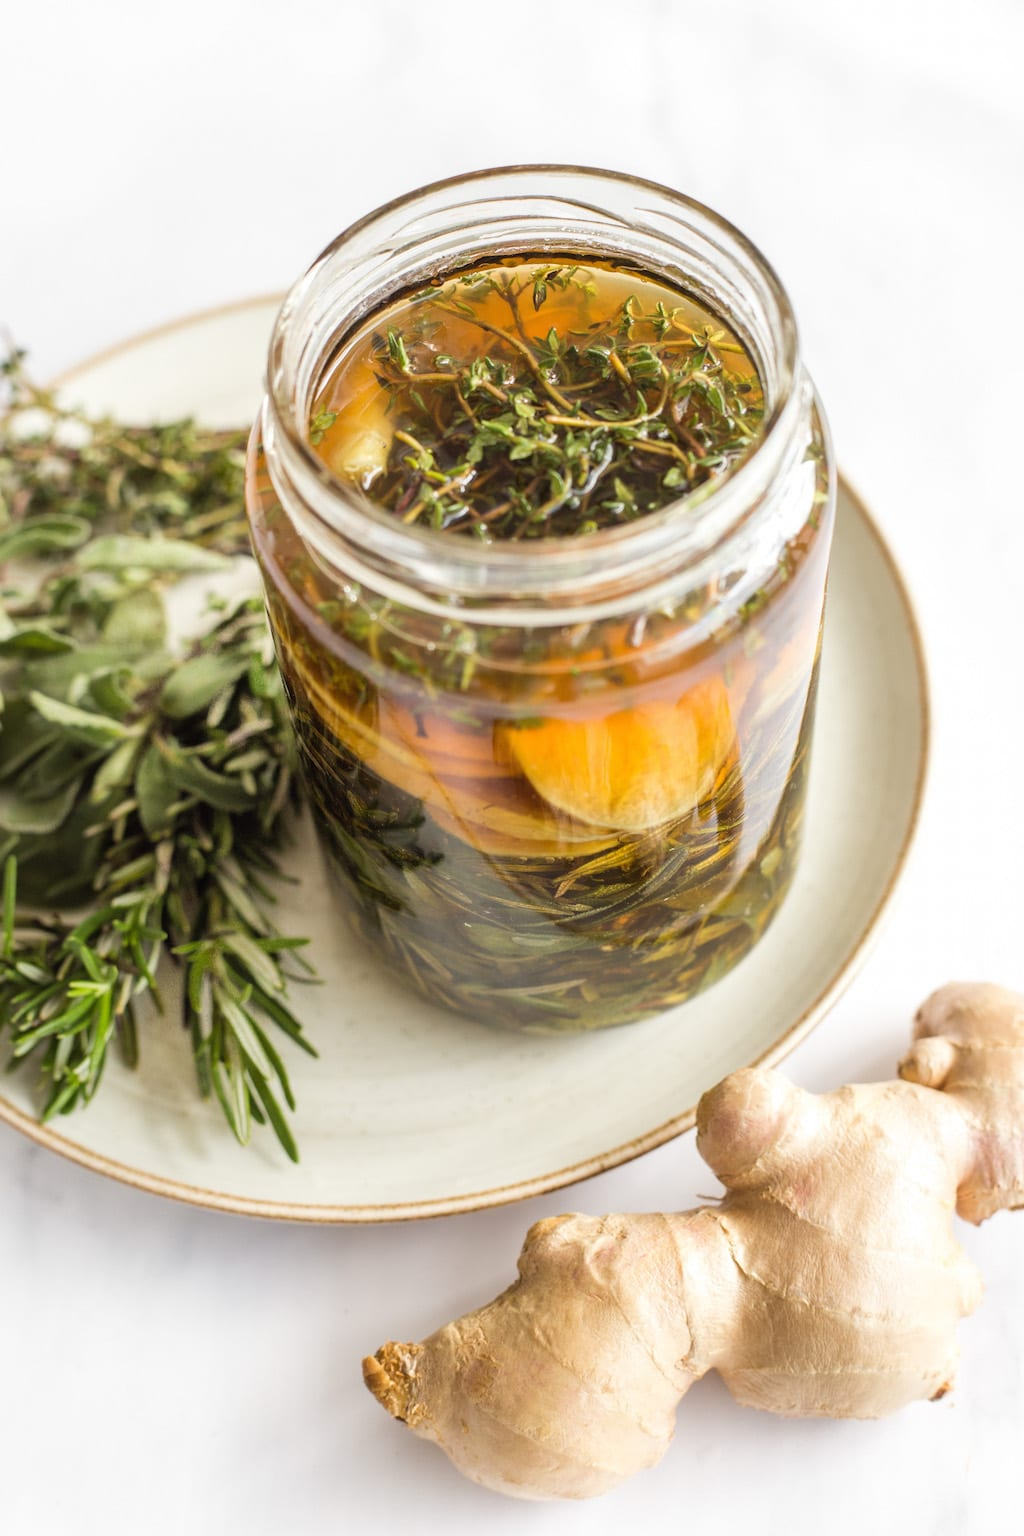 With fresh, potent botanicals and healing honey, this herbal honey infusion does your body and hormones good. What I love most about this infusion is that it need not be an exact science. You can have fun experimenting with different ingredients and ratios.